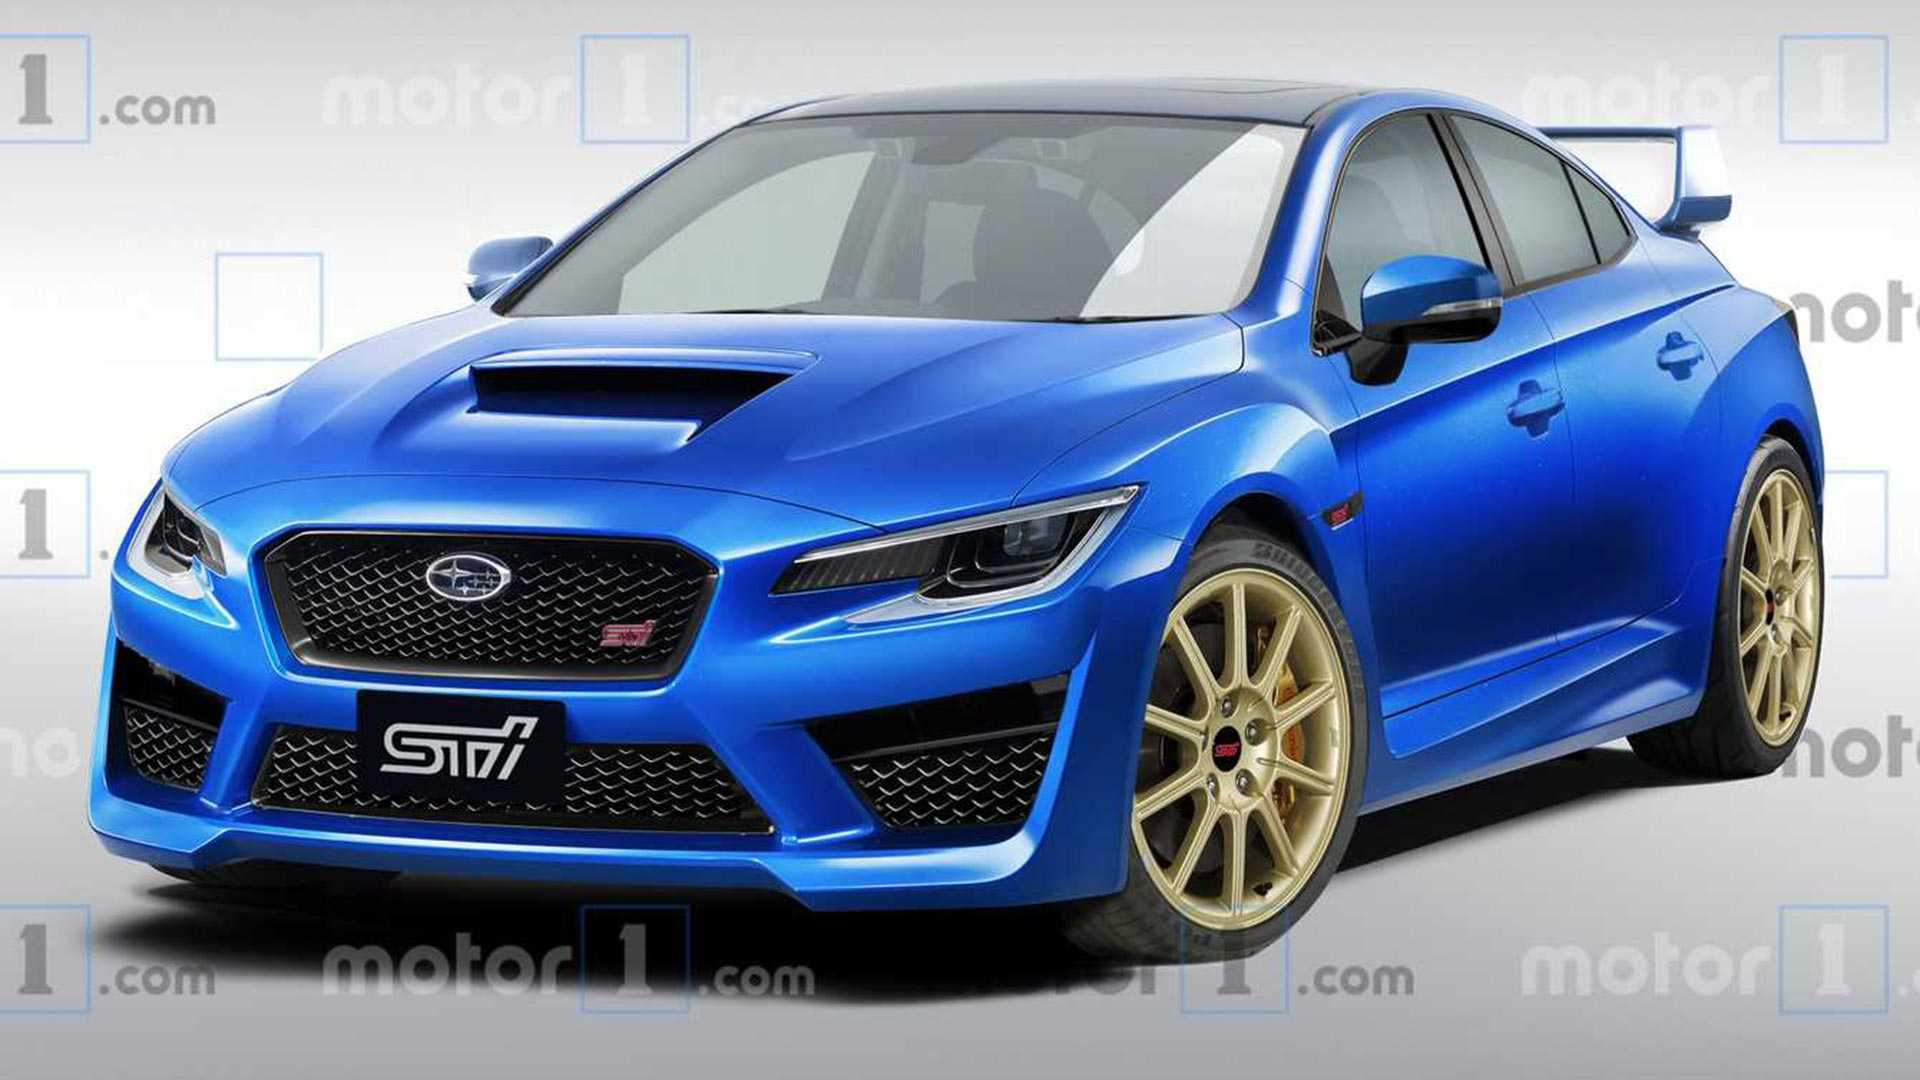 Subaru Lineup Through 2024 Allegedly Leaked, And You'll Be Happy